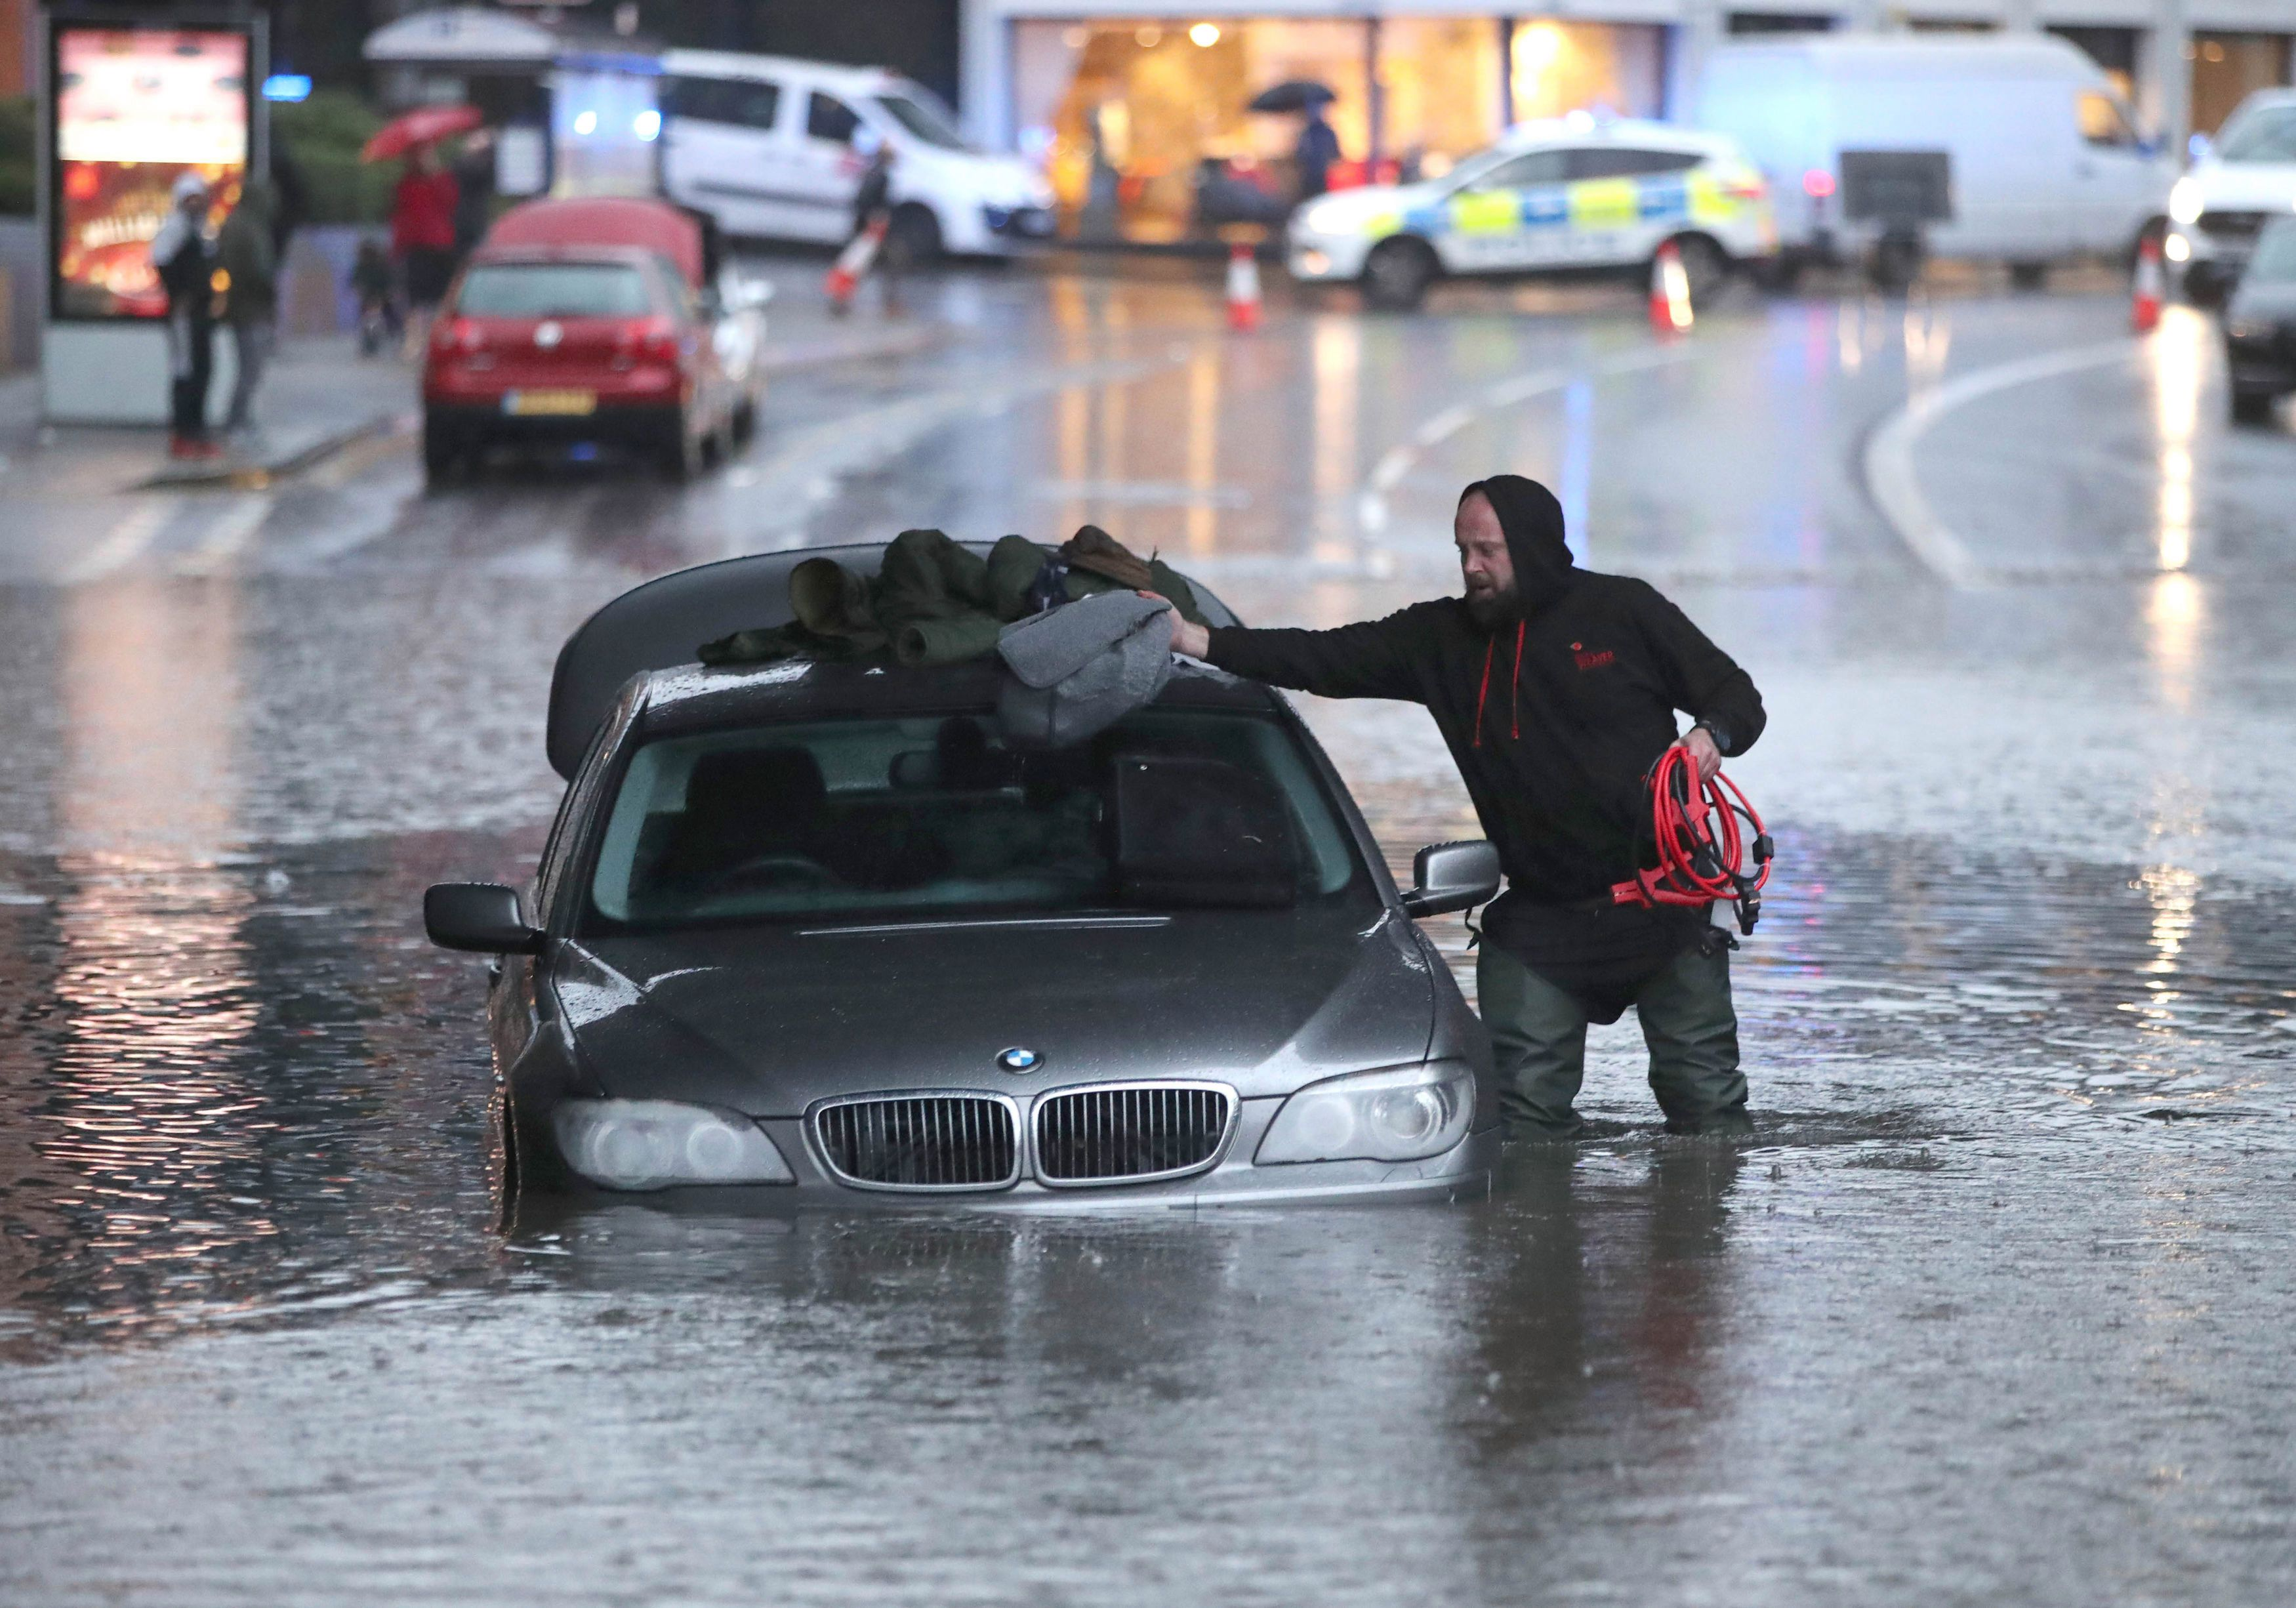 A man abandons his car in a flooded street in Sheffield